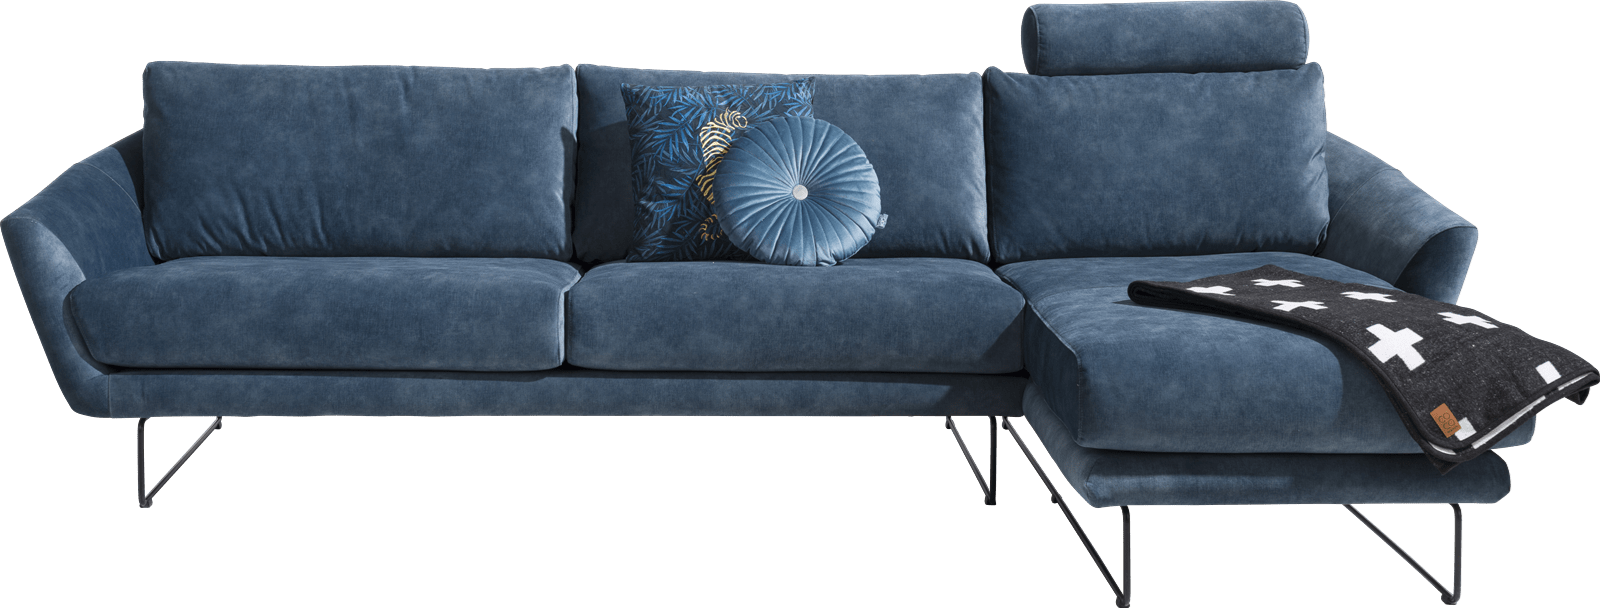 XOOON - Akron - Skandinavisches Design - Sofas - 2.5-sitzer armlehne links